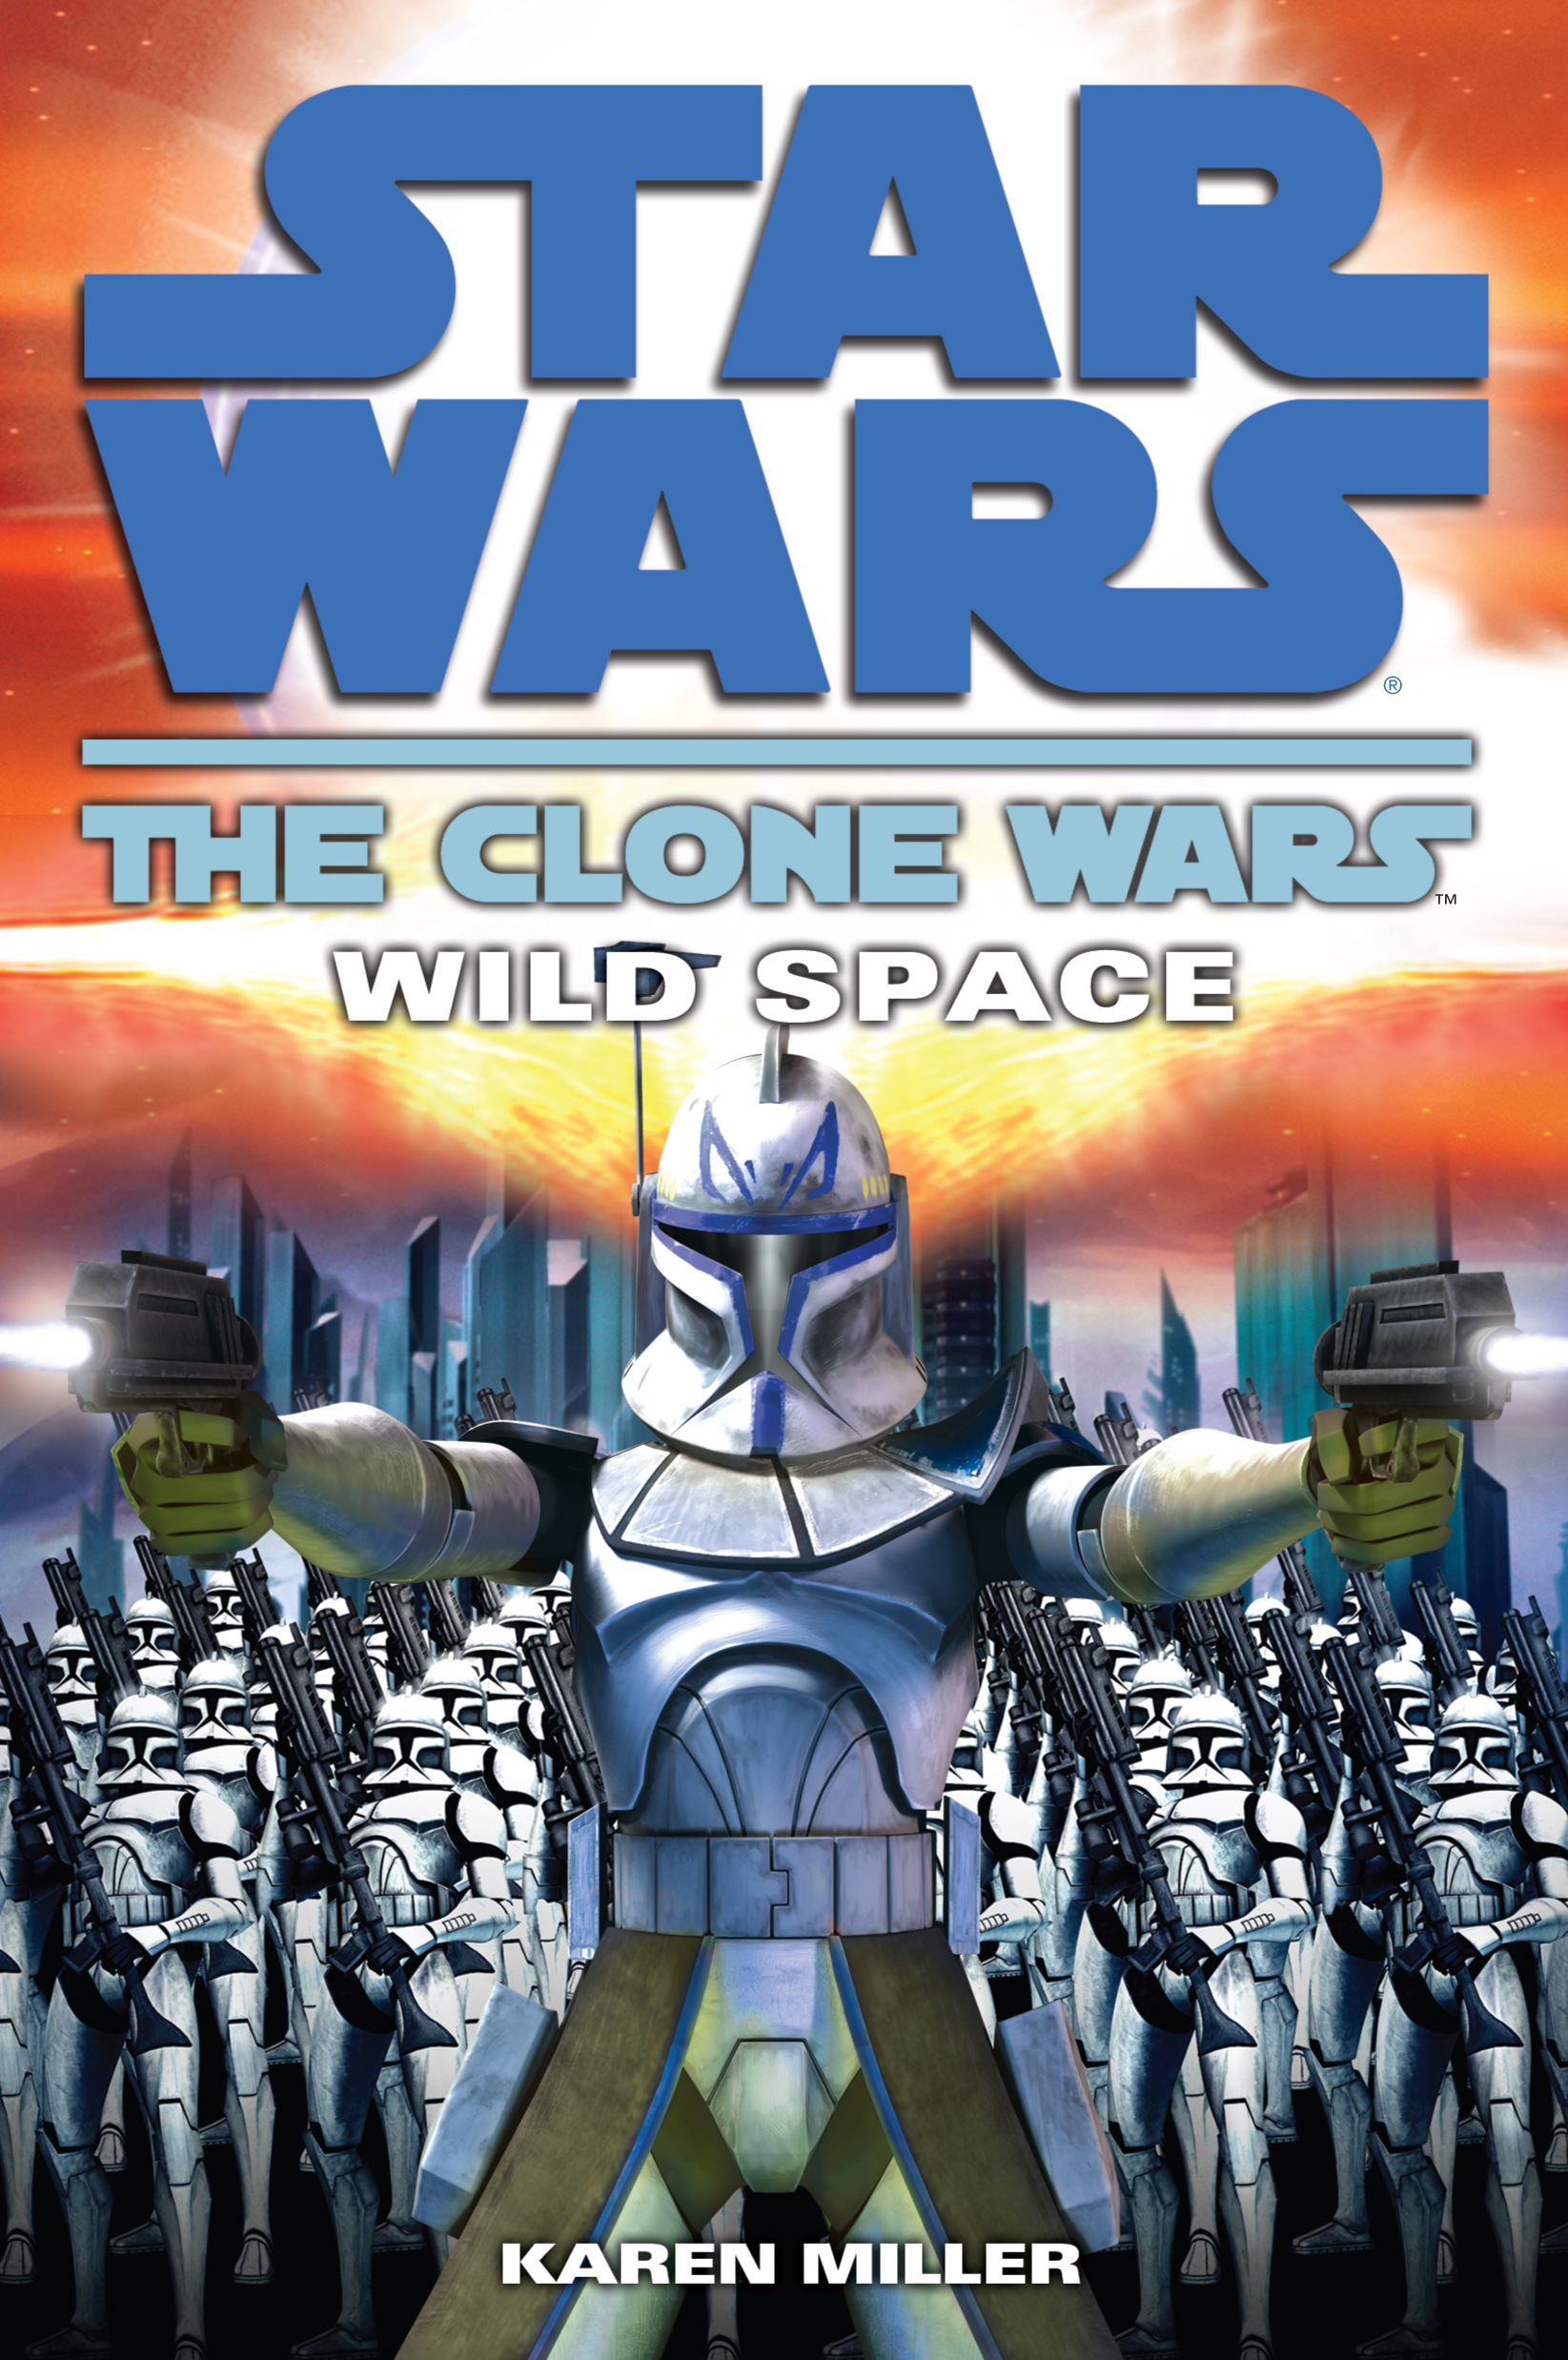 cover with clone troopers aiming blasters